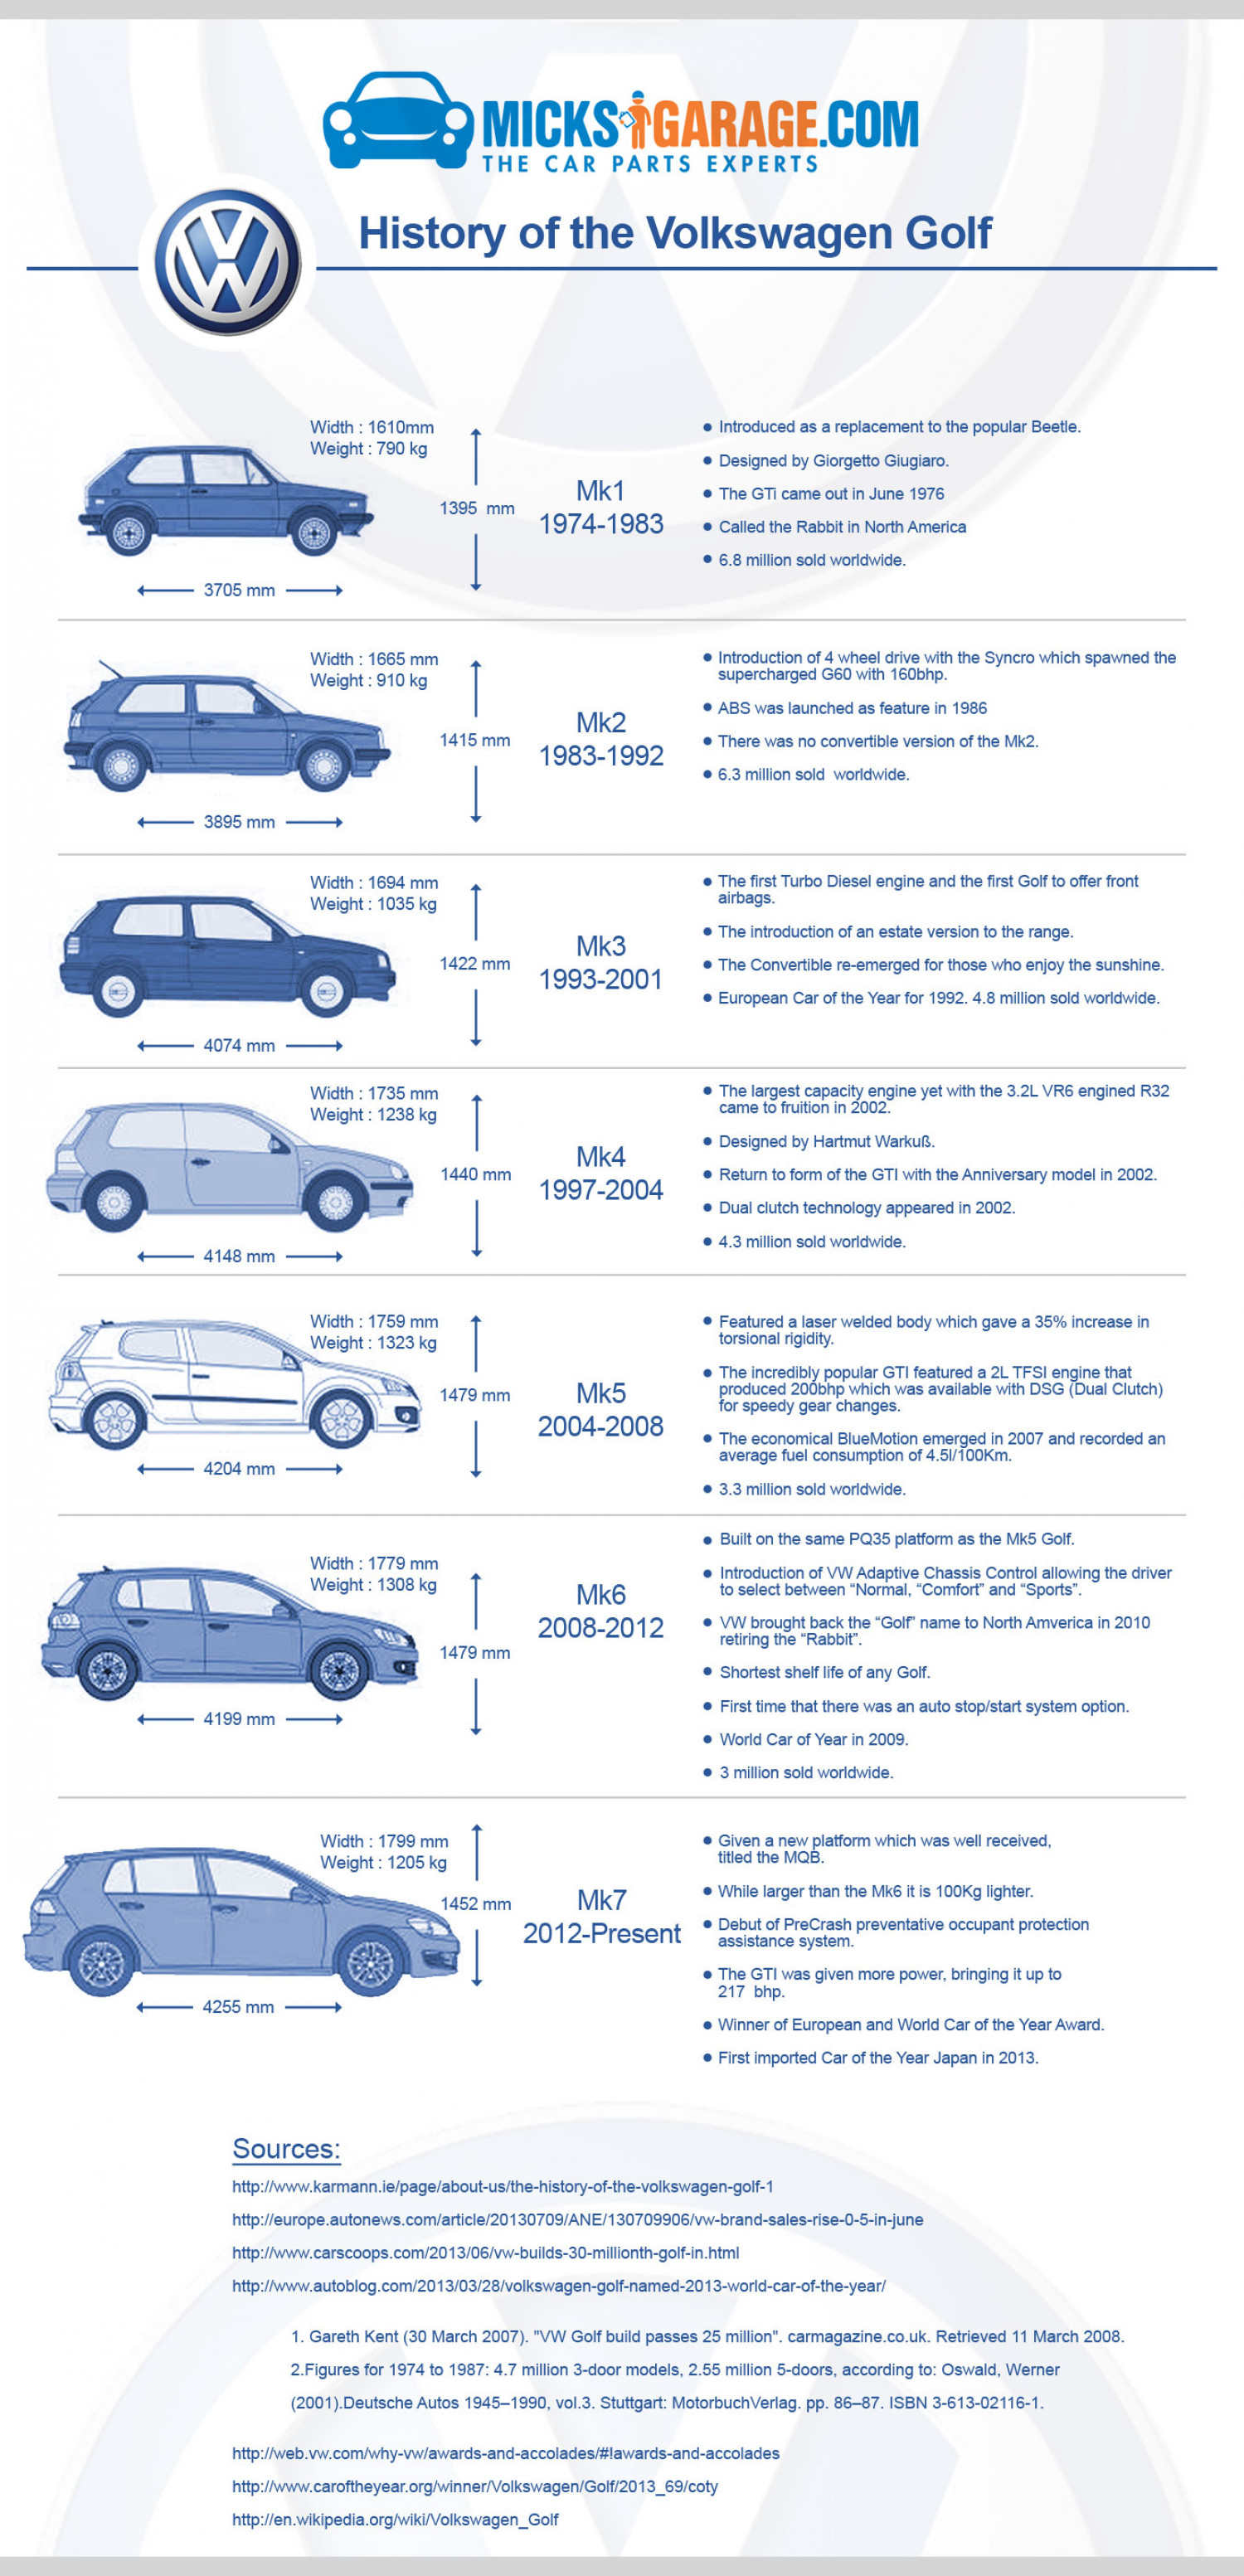 History of the Volkswagen Golf Infographic